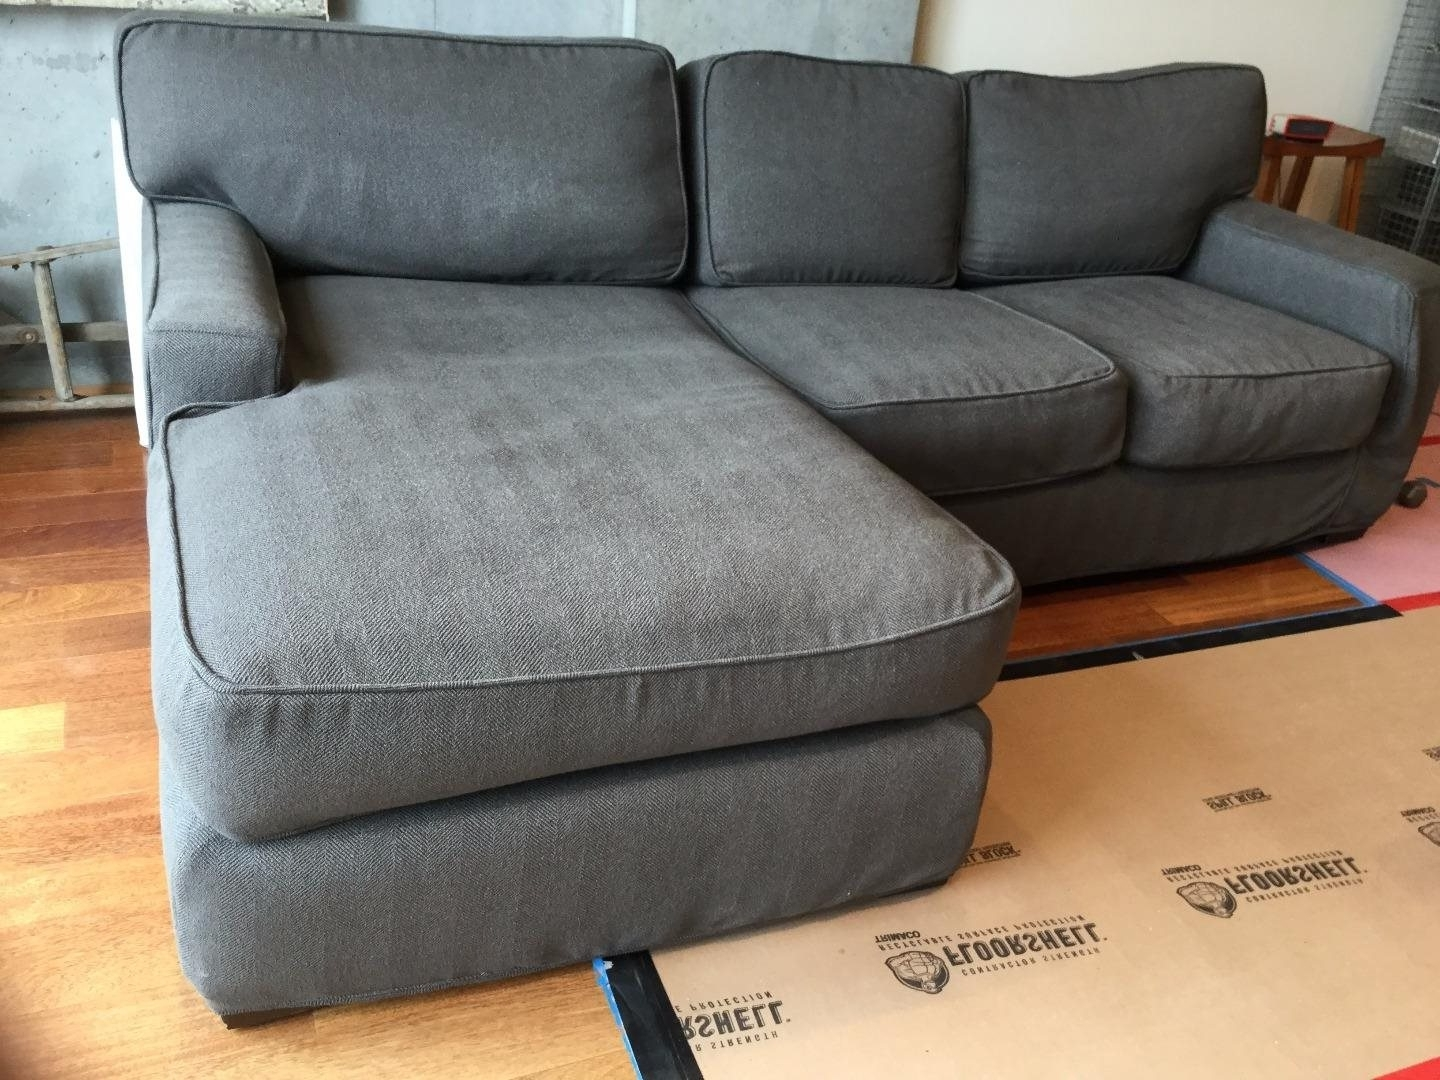 Well Known Quatrine Sectional Sofas With Regard To Quatrine Upholstered Sectional Sofa: For Sale In San Francisco, Ca (View 18 of 20)